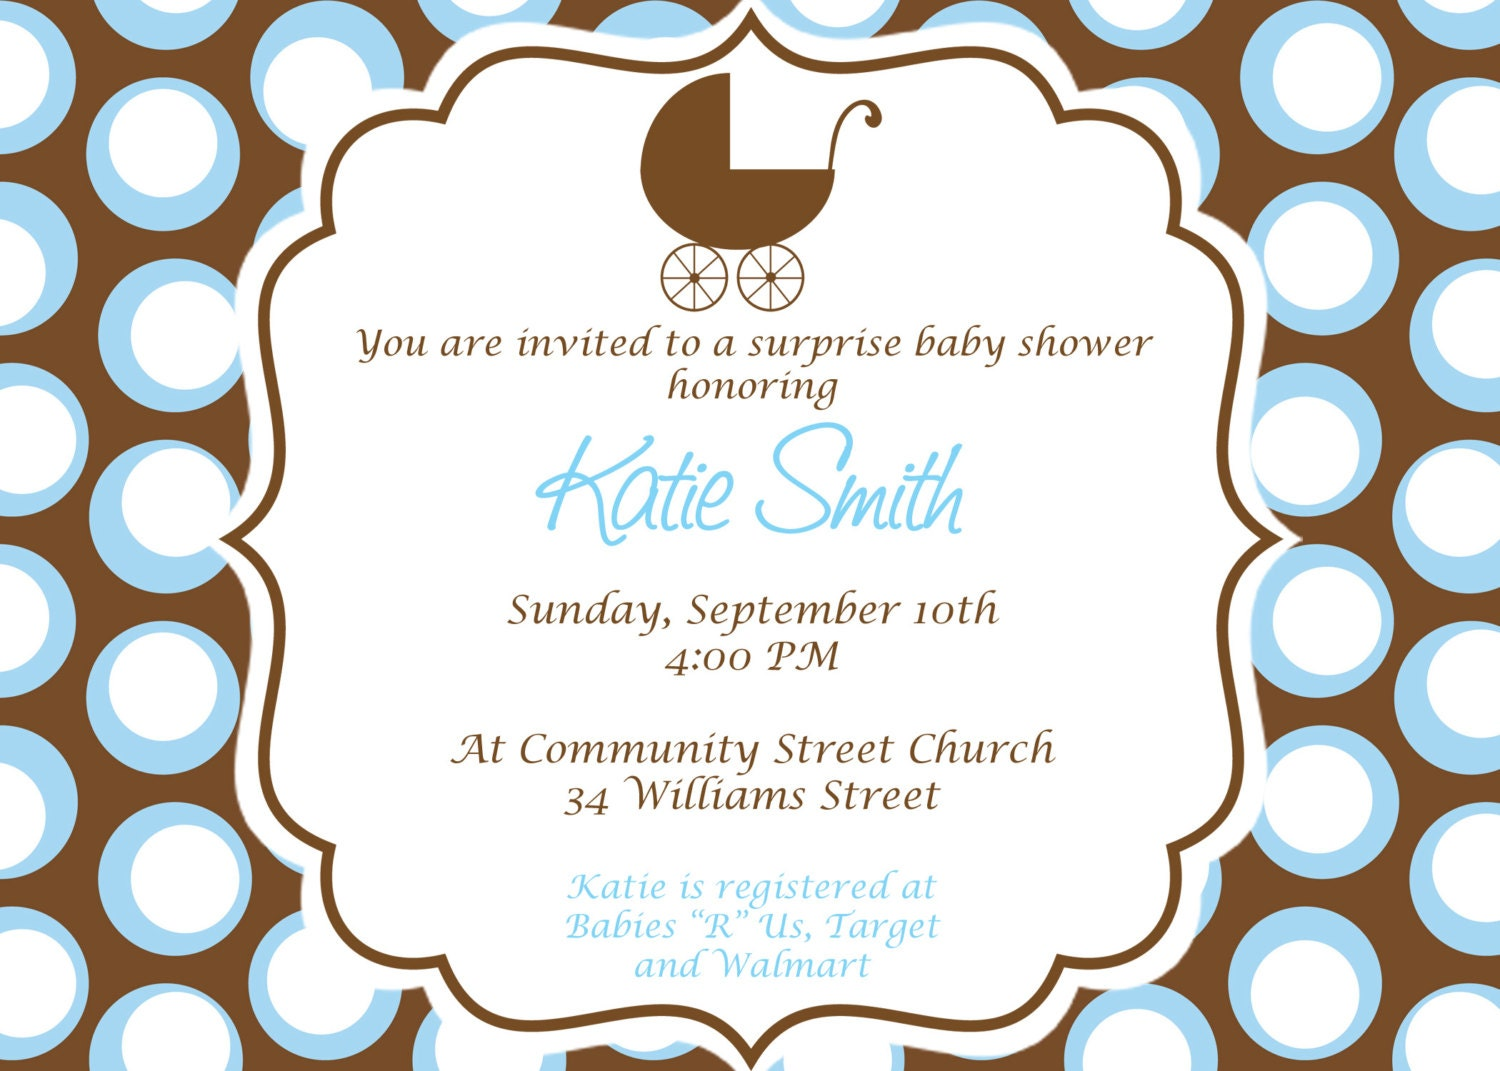 Remarkable image for free printable baby shower invitations templates